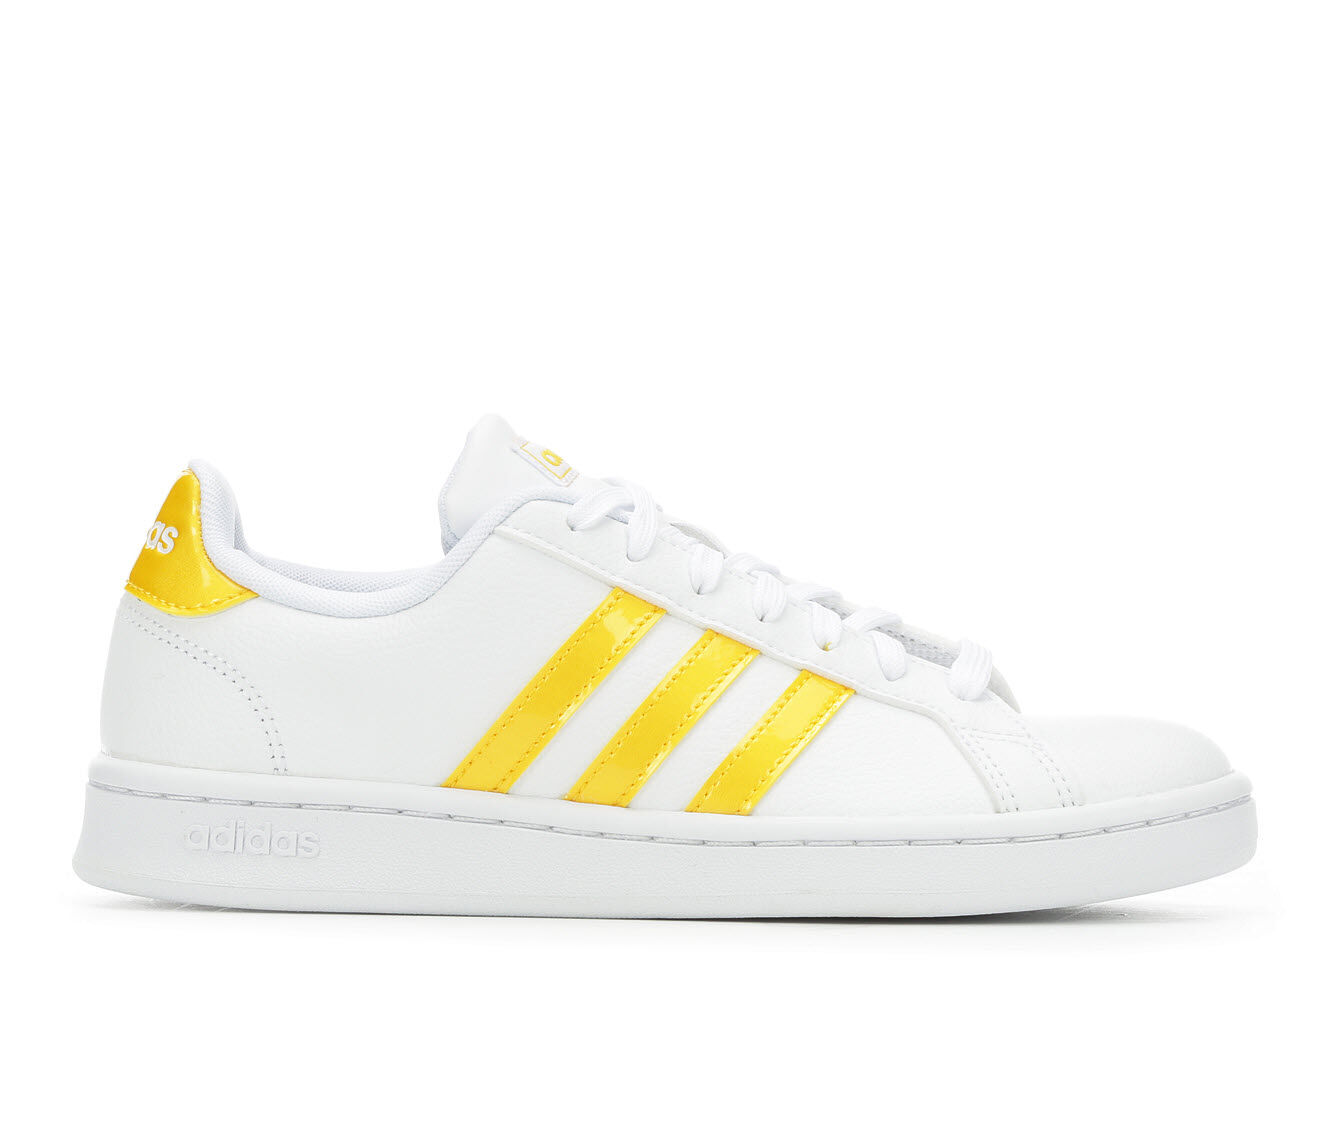 Women's Adidas Grand Court Basketball Shoes White/Gold